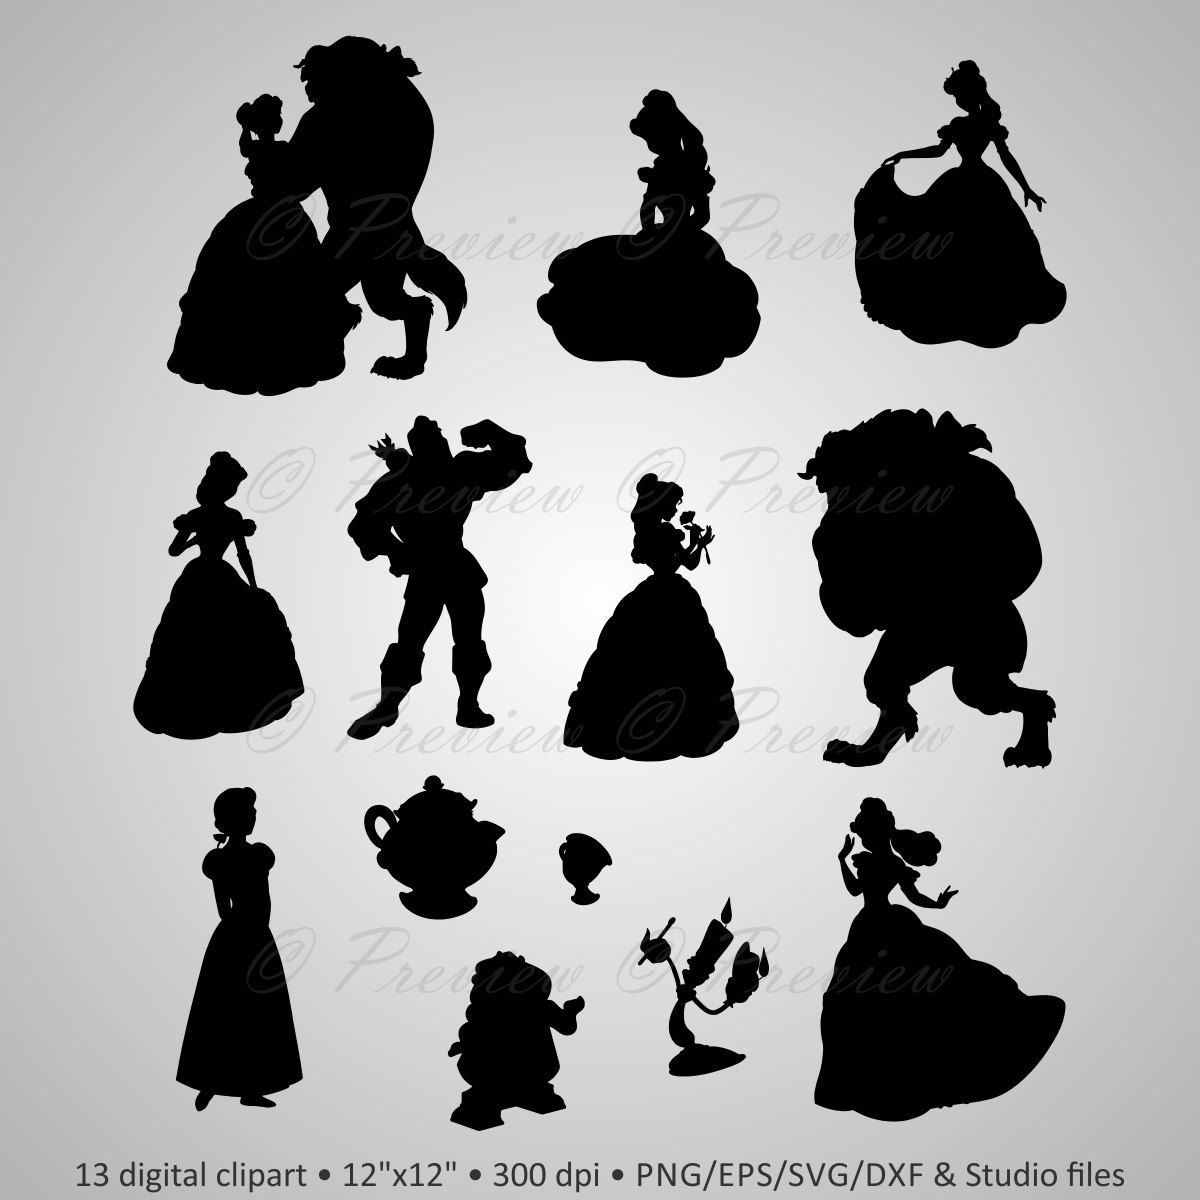 Digital Clipart Silhouettes Beauty And The Beast Disney